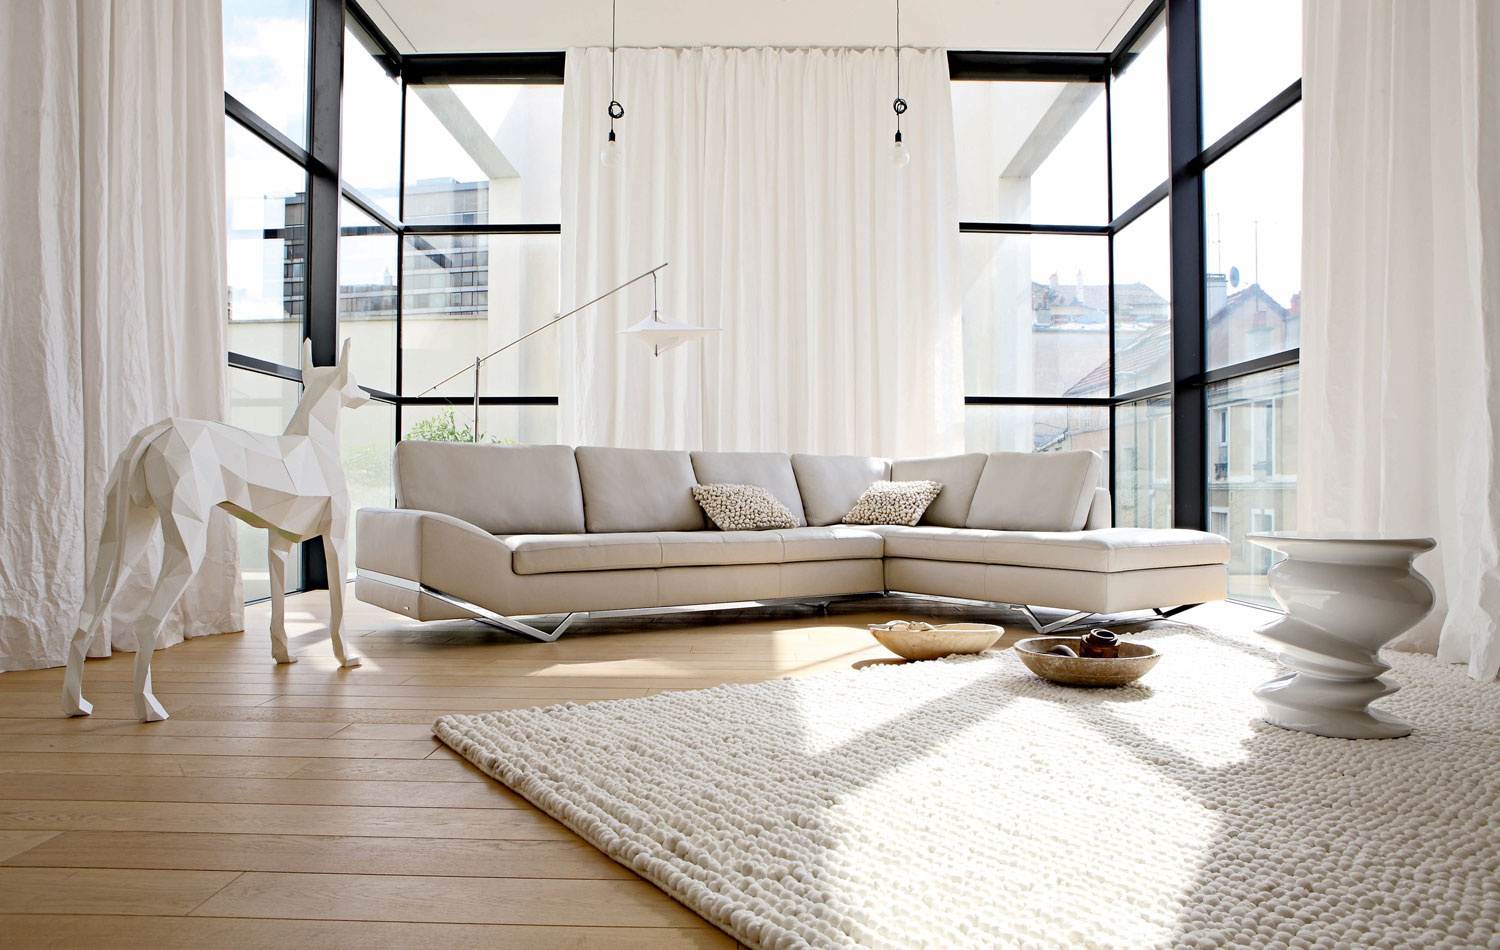 the sofa is modular intervalle roche bobois